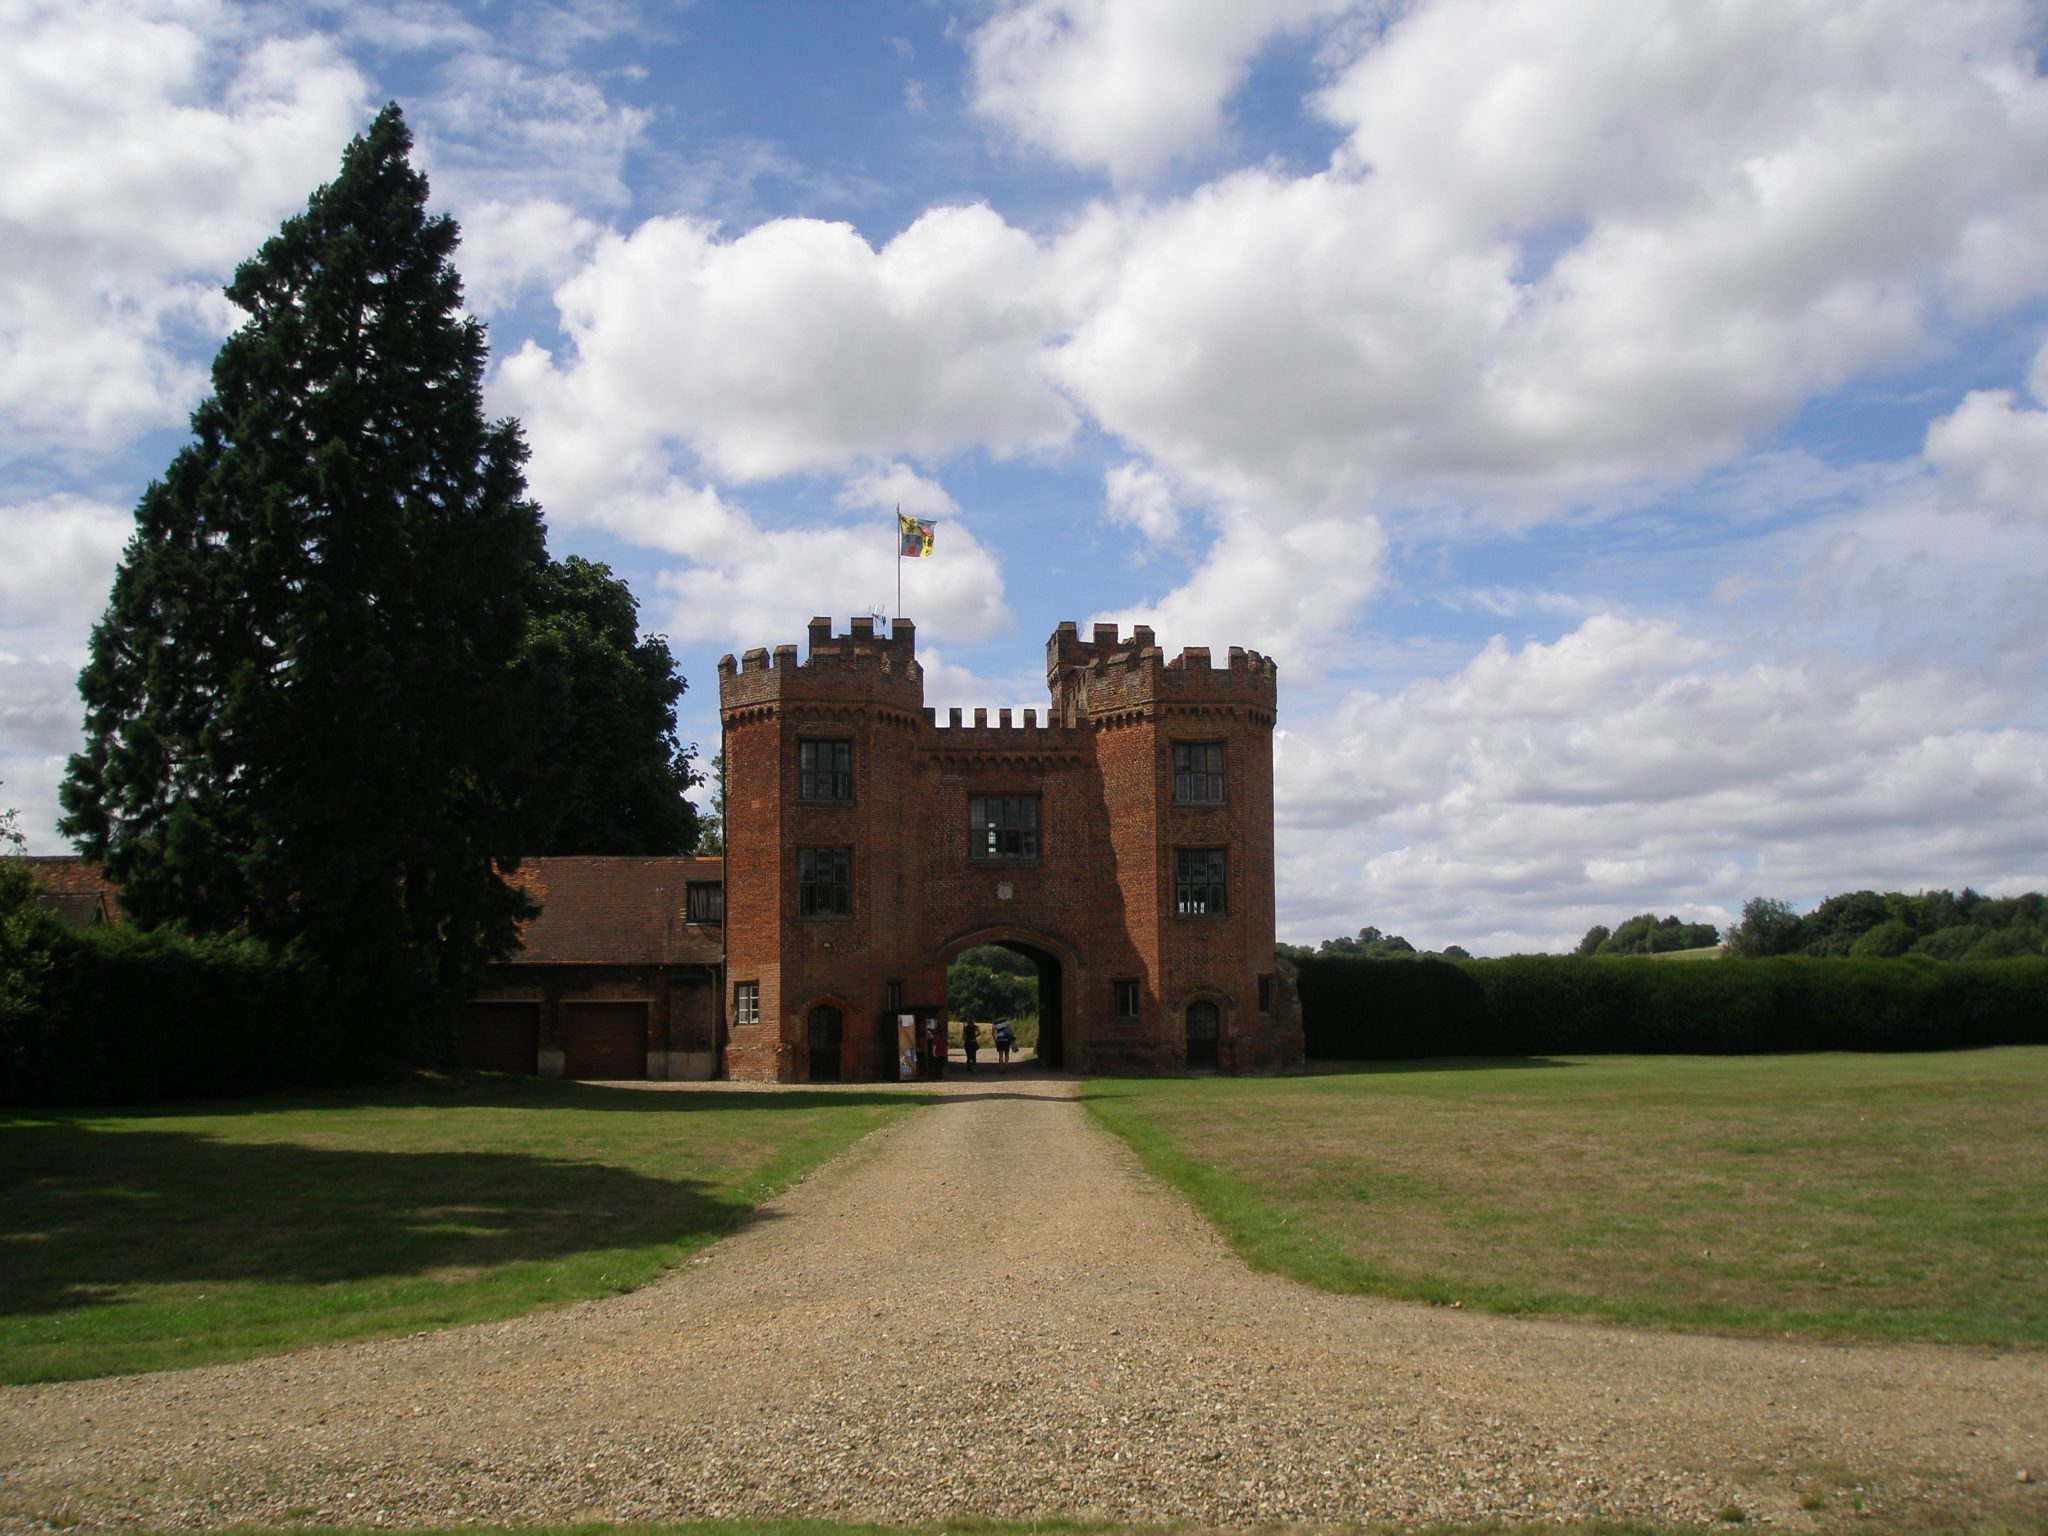 The Gate House (built in 1497), as seen from the inner lawn. On these extensive lawns the earliest rules for Lawn Tennis were drawn up, in 1873.